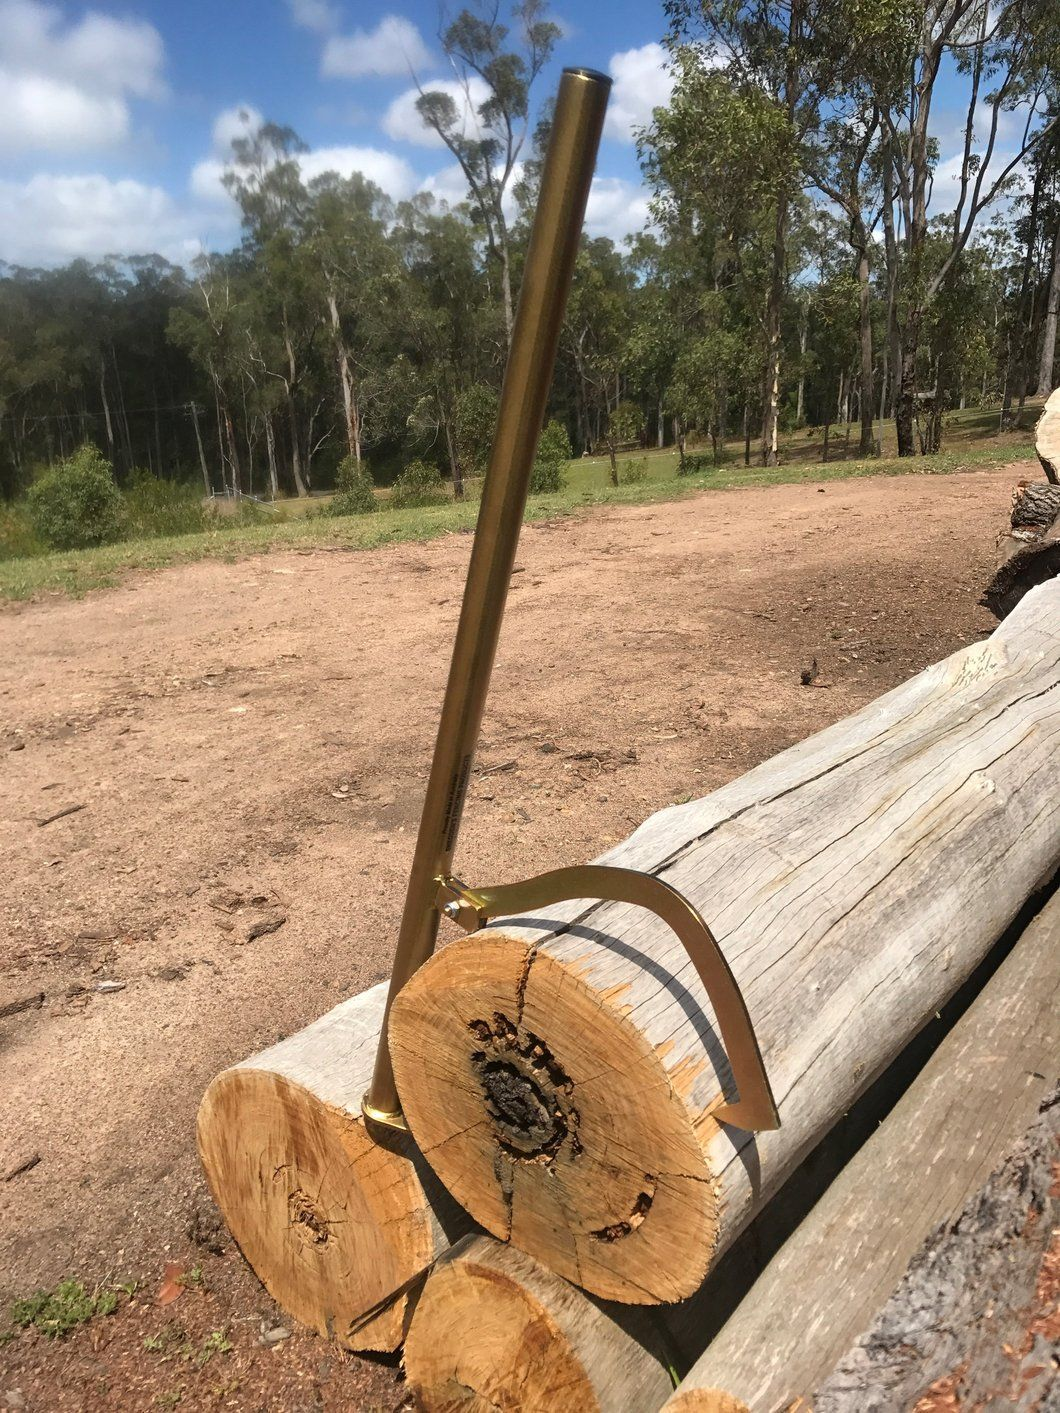 Cant Hook Log Peavy All Metal Made in the USA